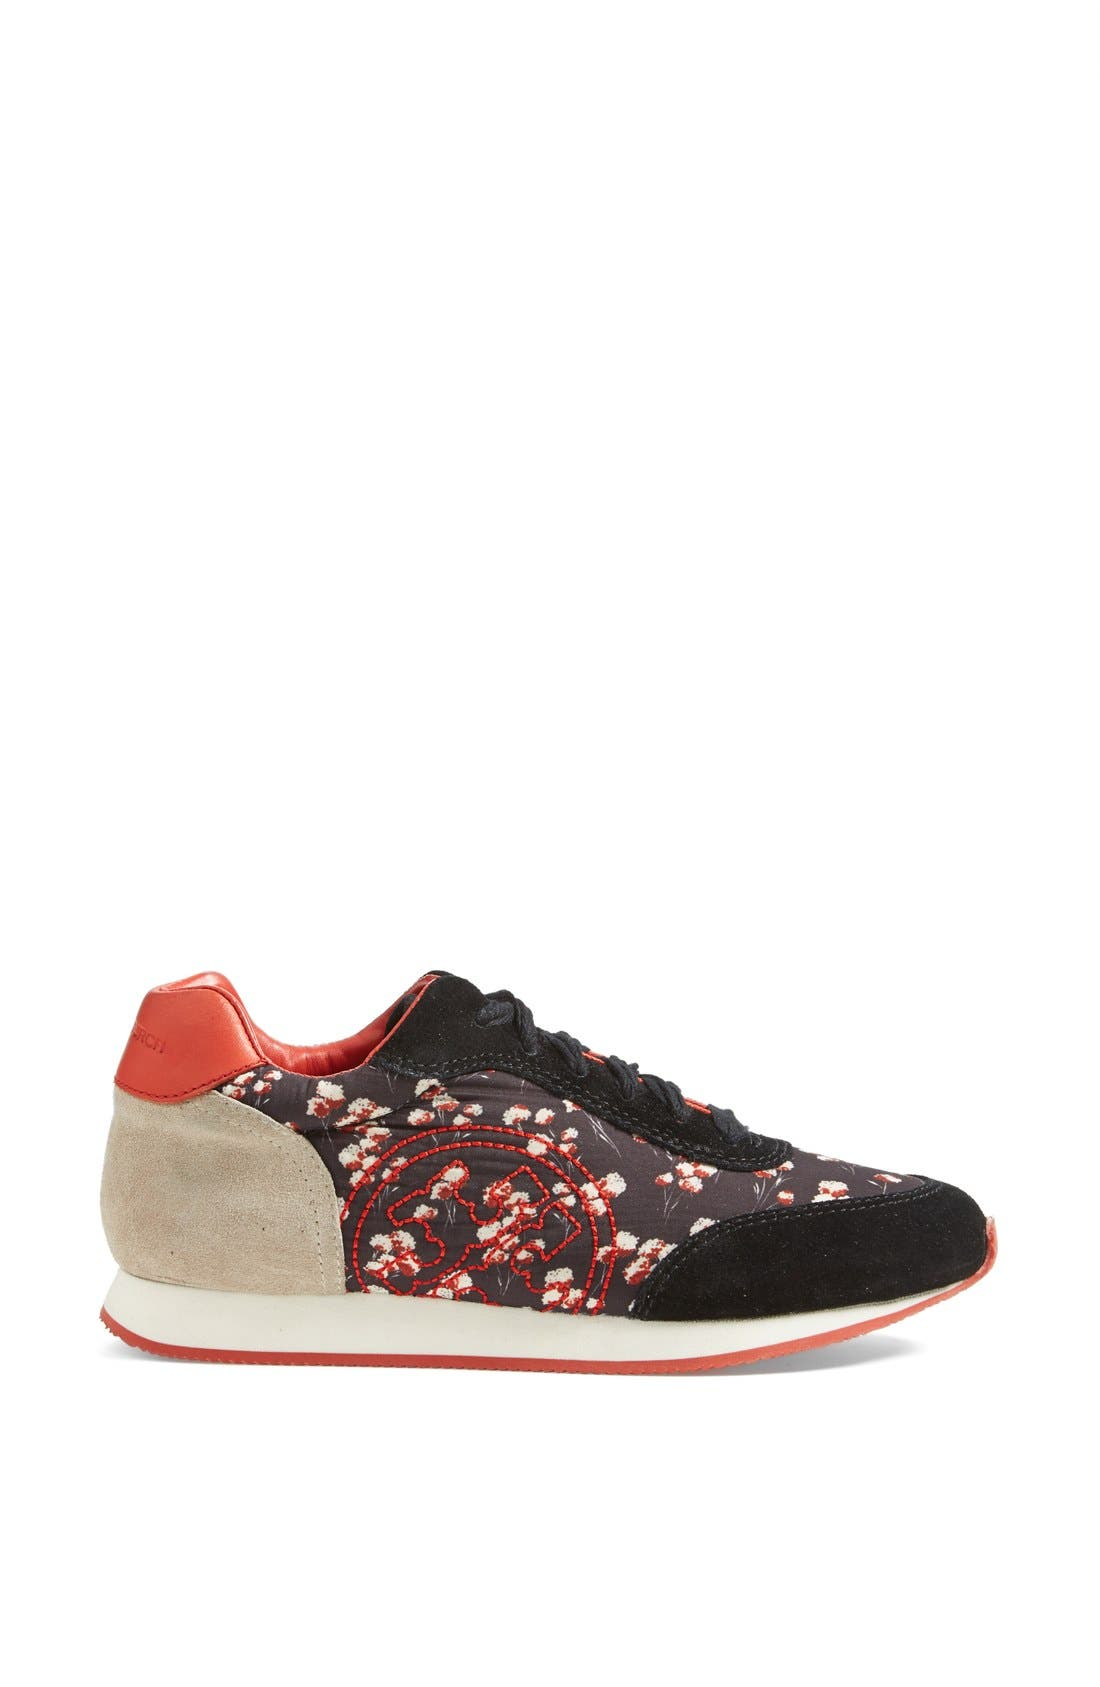 Alternate Image 4  - Tory Burch 'Delancey' Print Sneaker